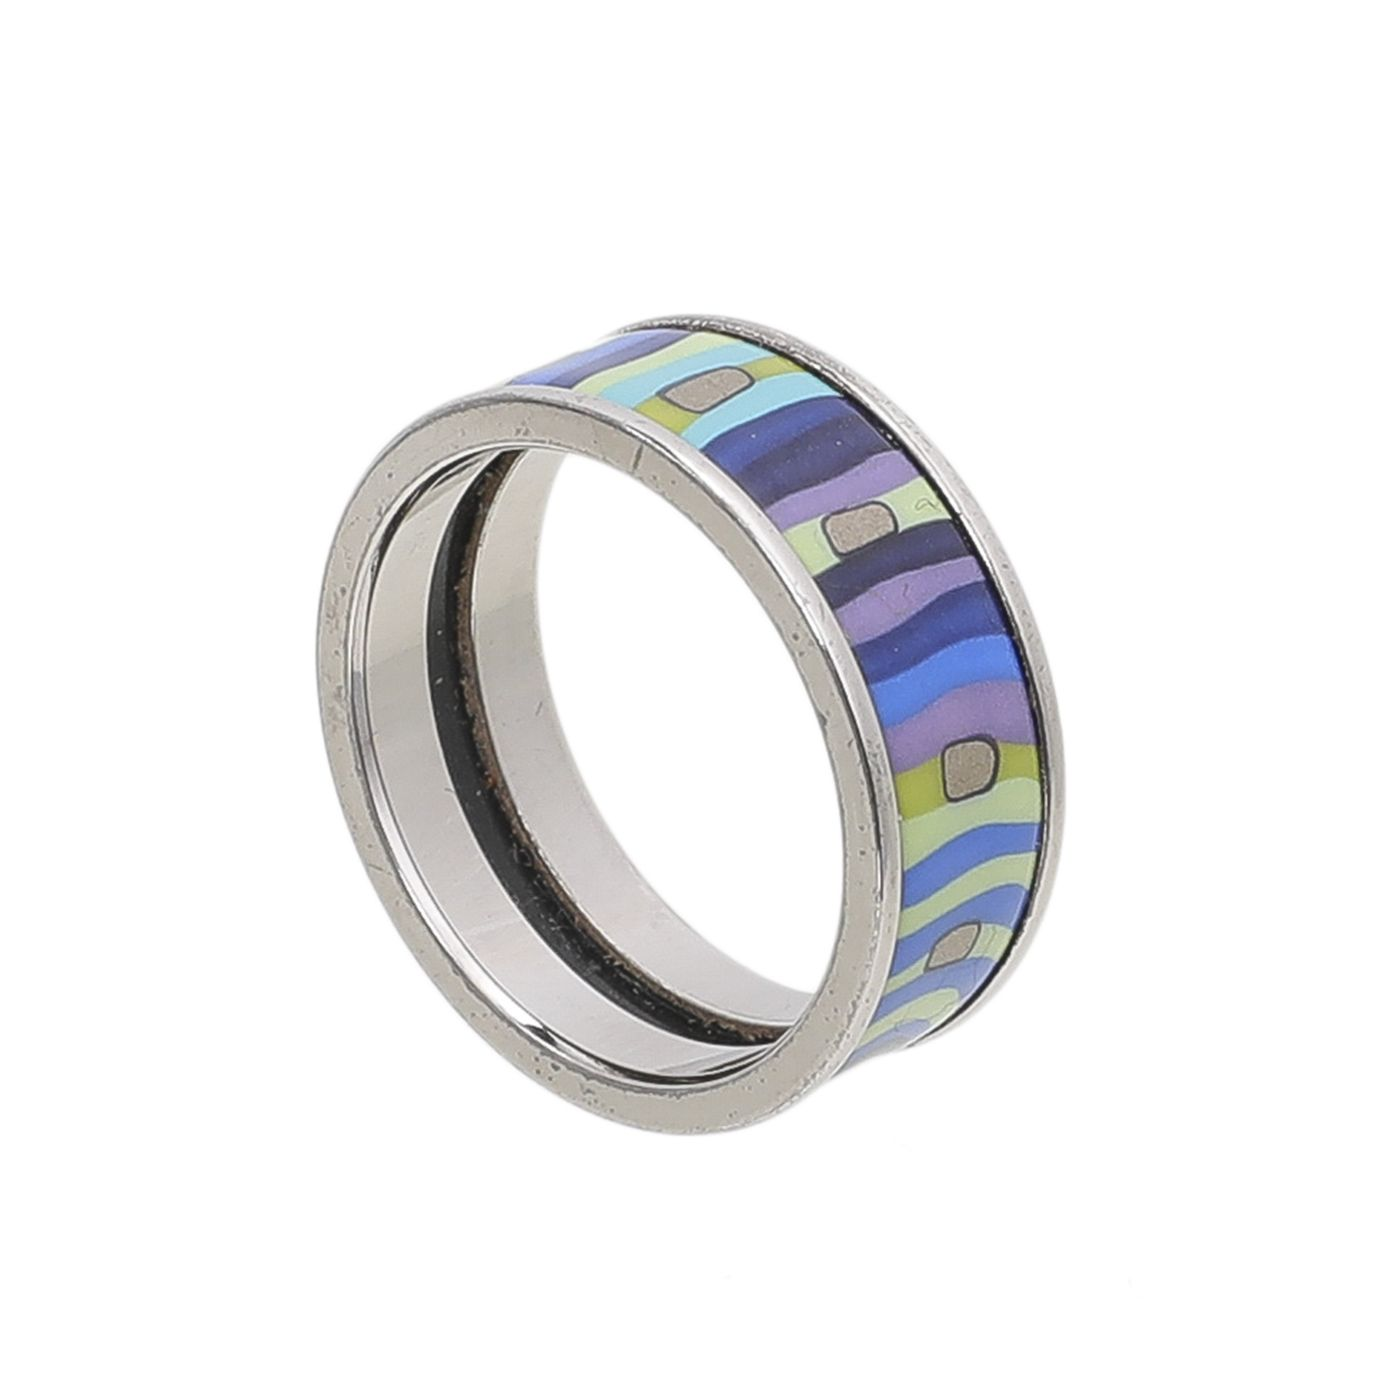 Frey Wille Multicolor Ring